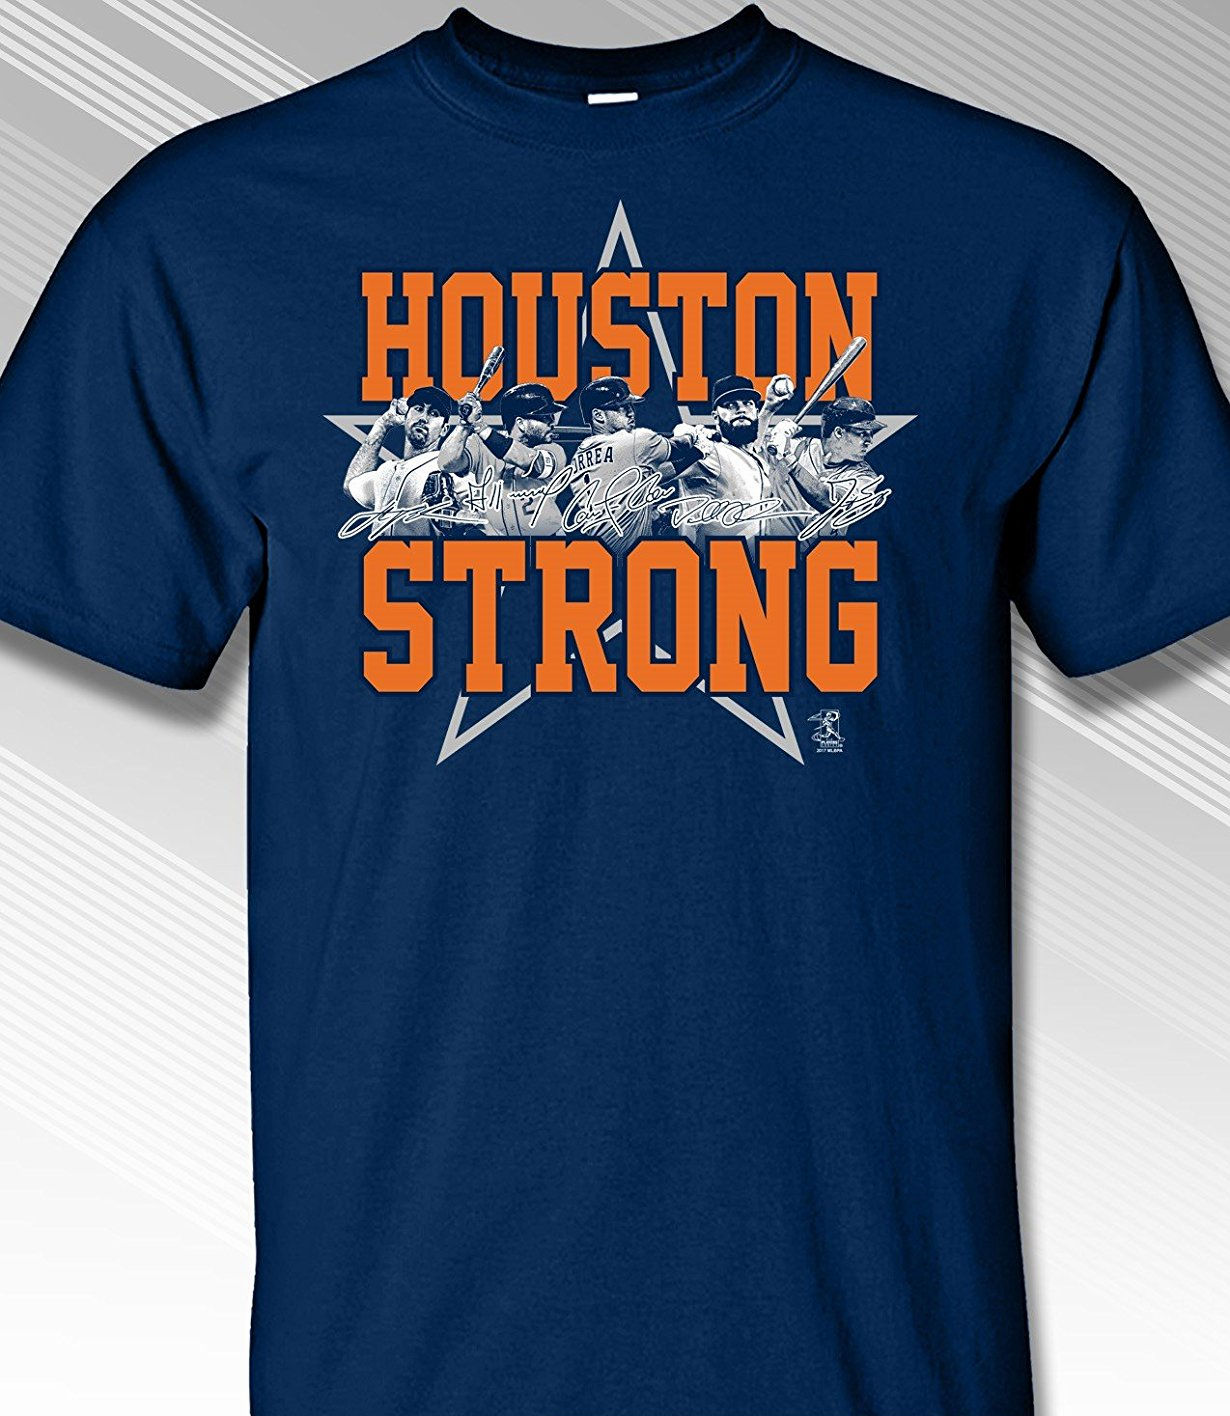 Houston Strong T-Shirt<br>Short or Long Sleeve<br>Youth Med to Adult 4X